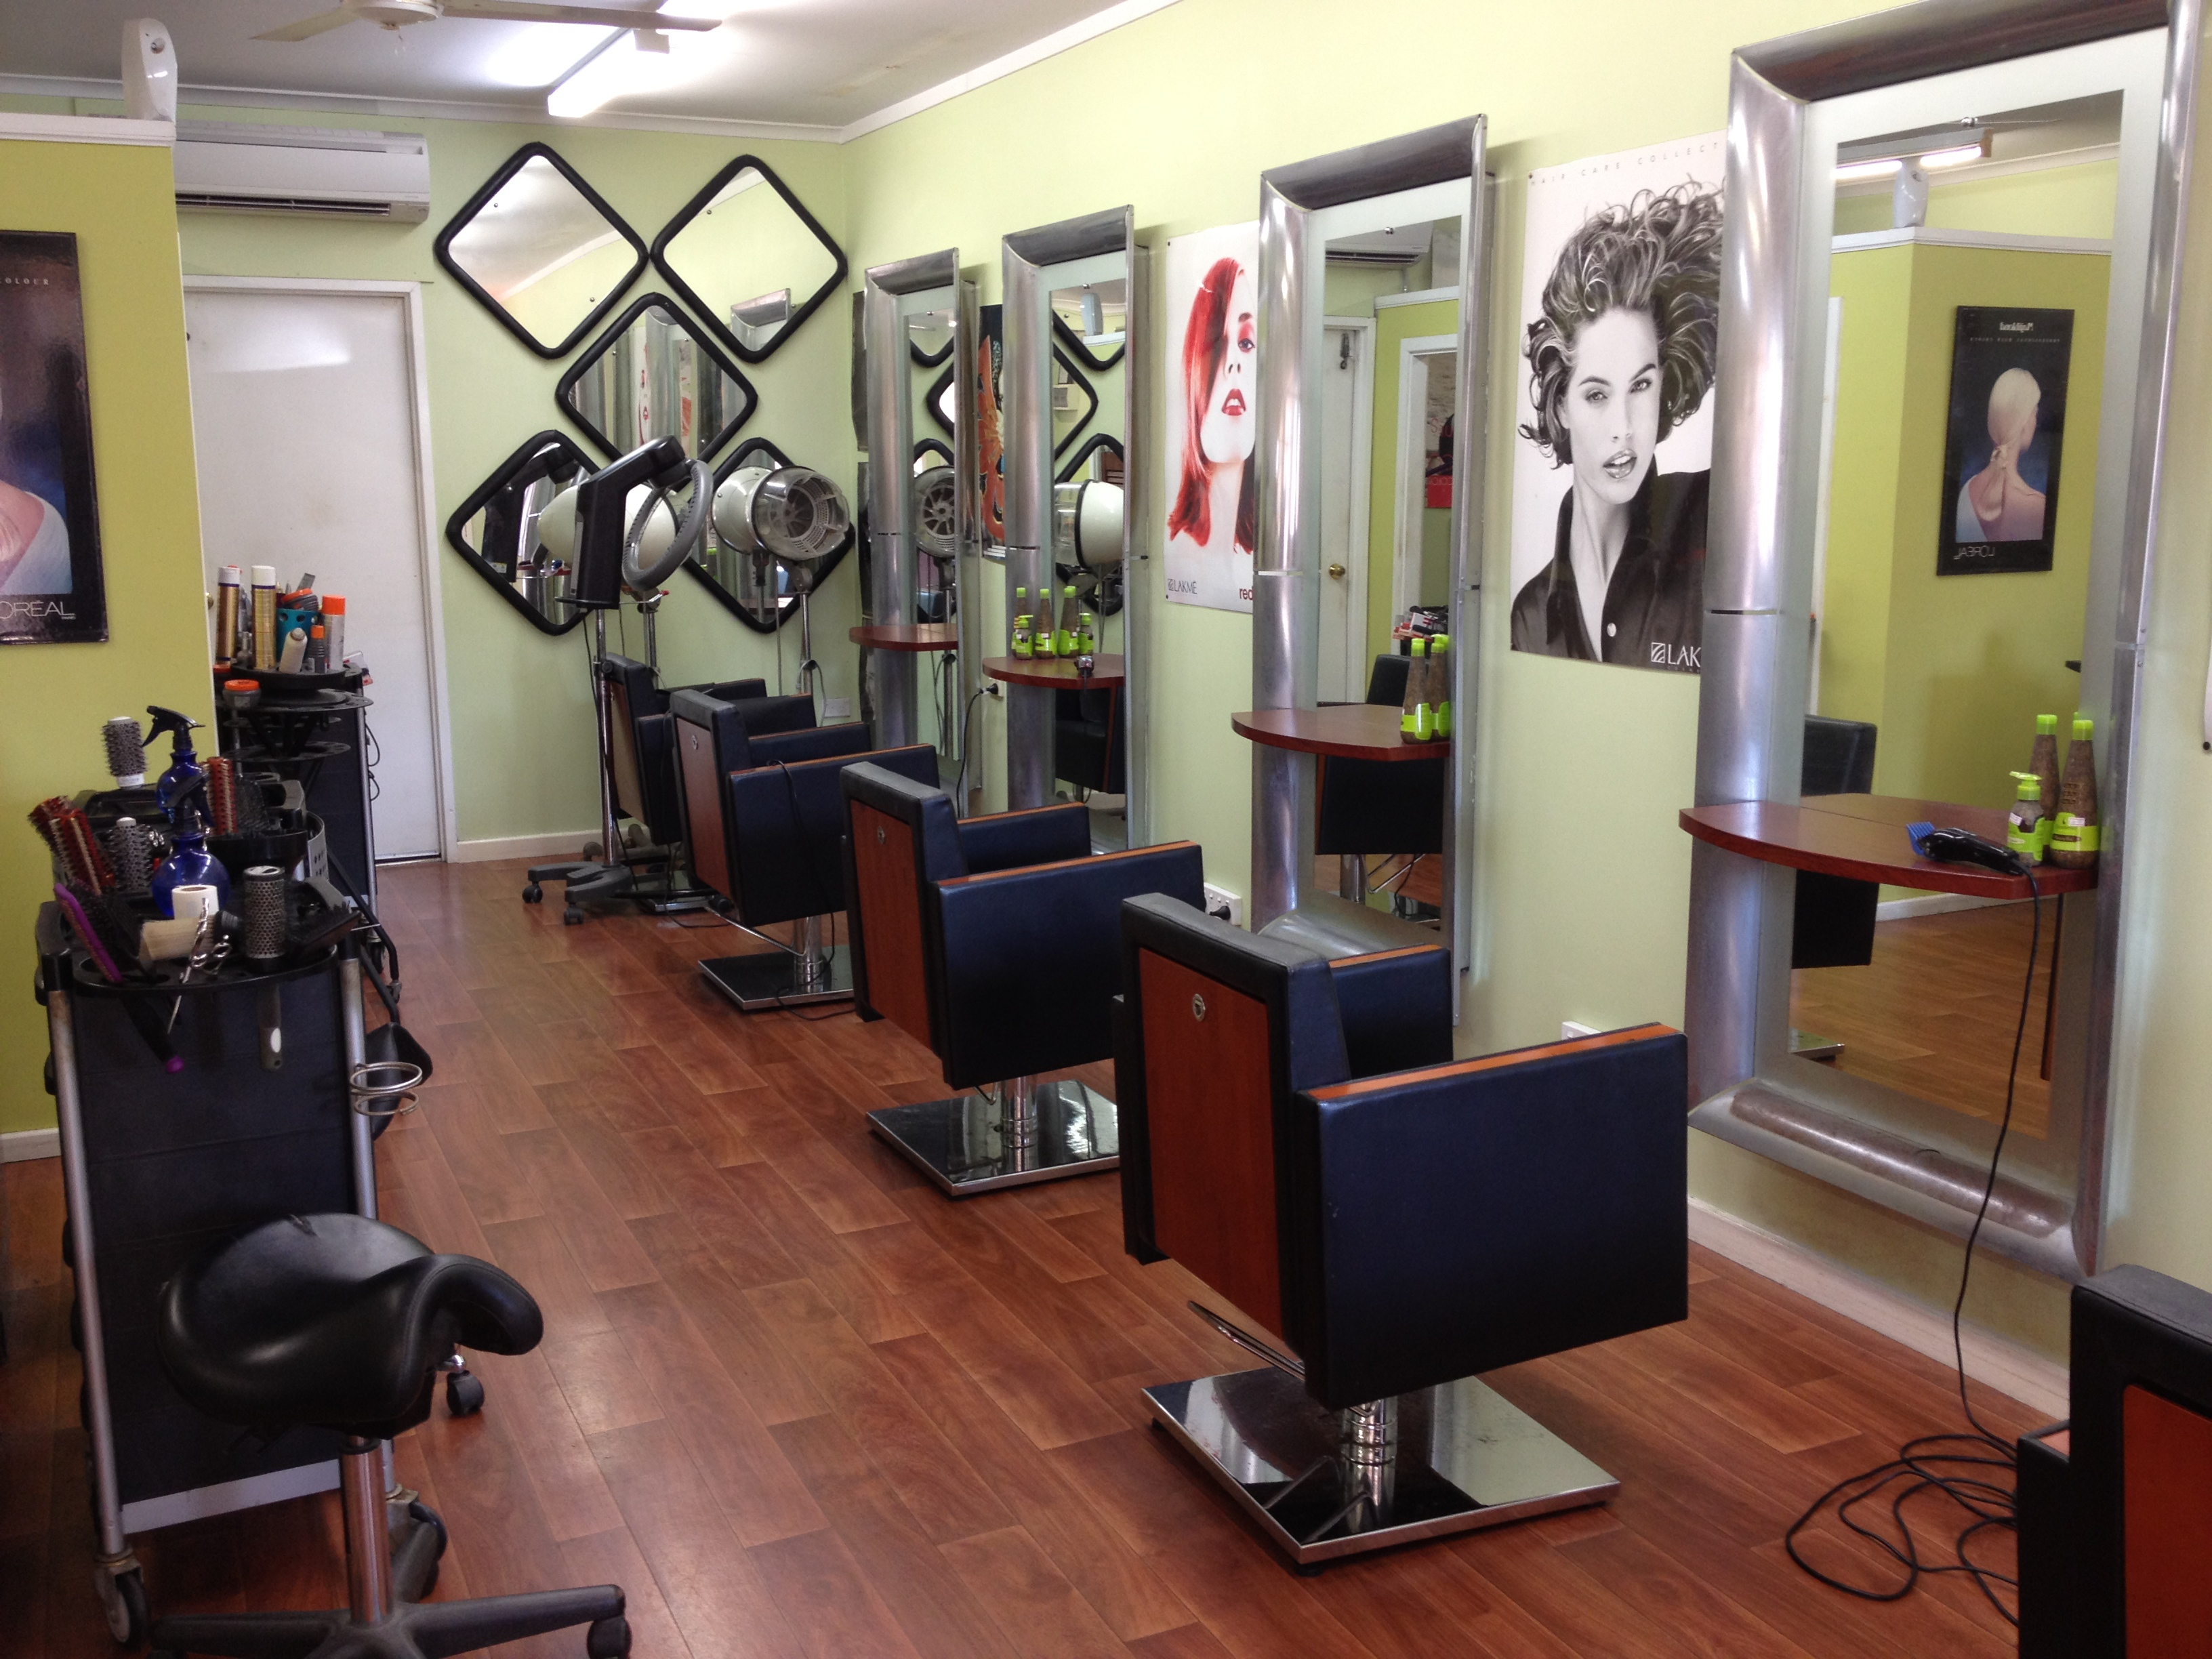 Hair Salons In : Hair Salon Hair salon broome - inside